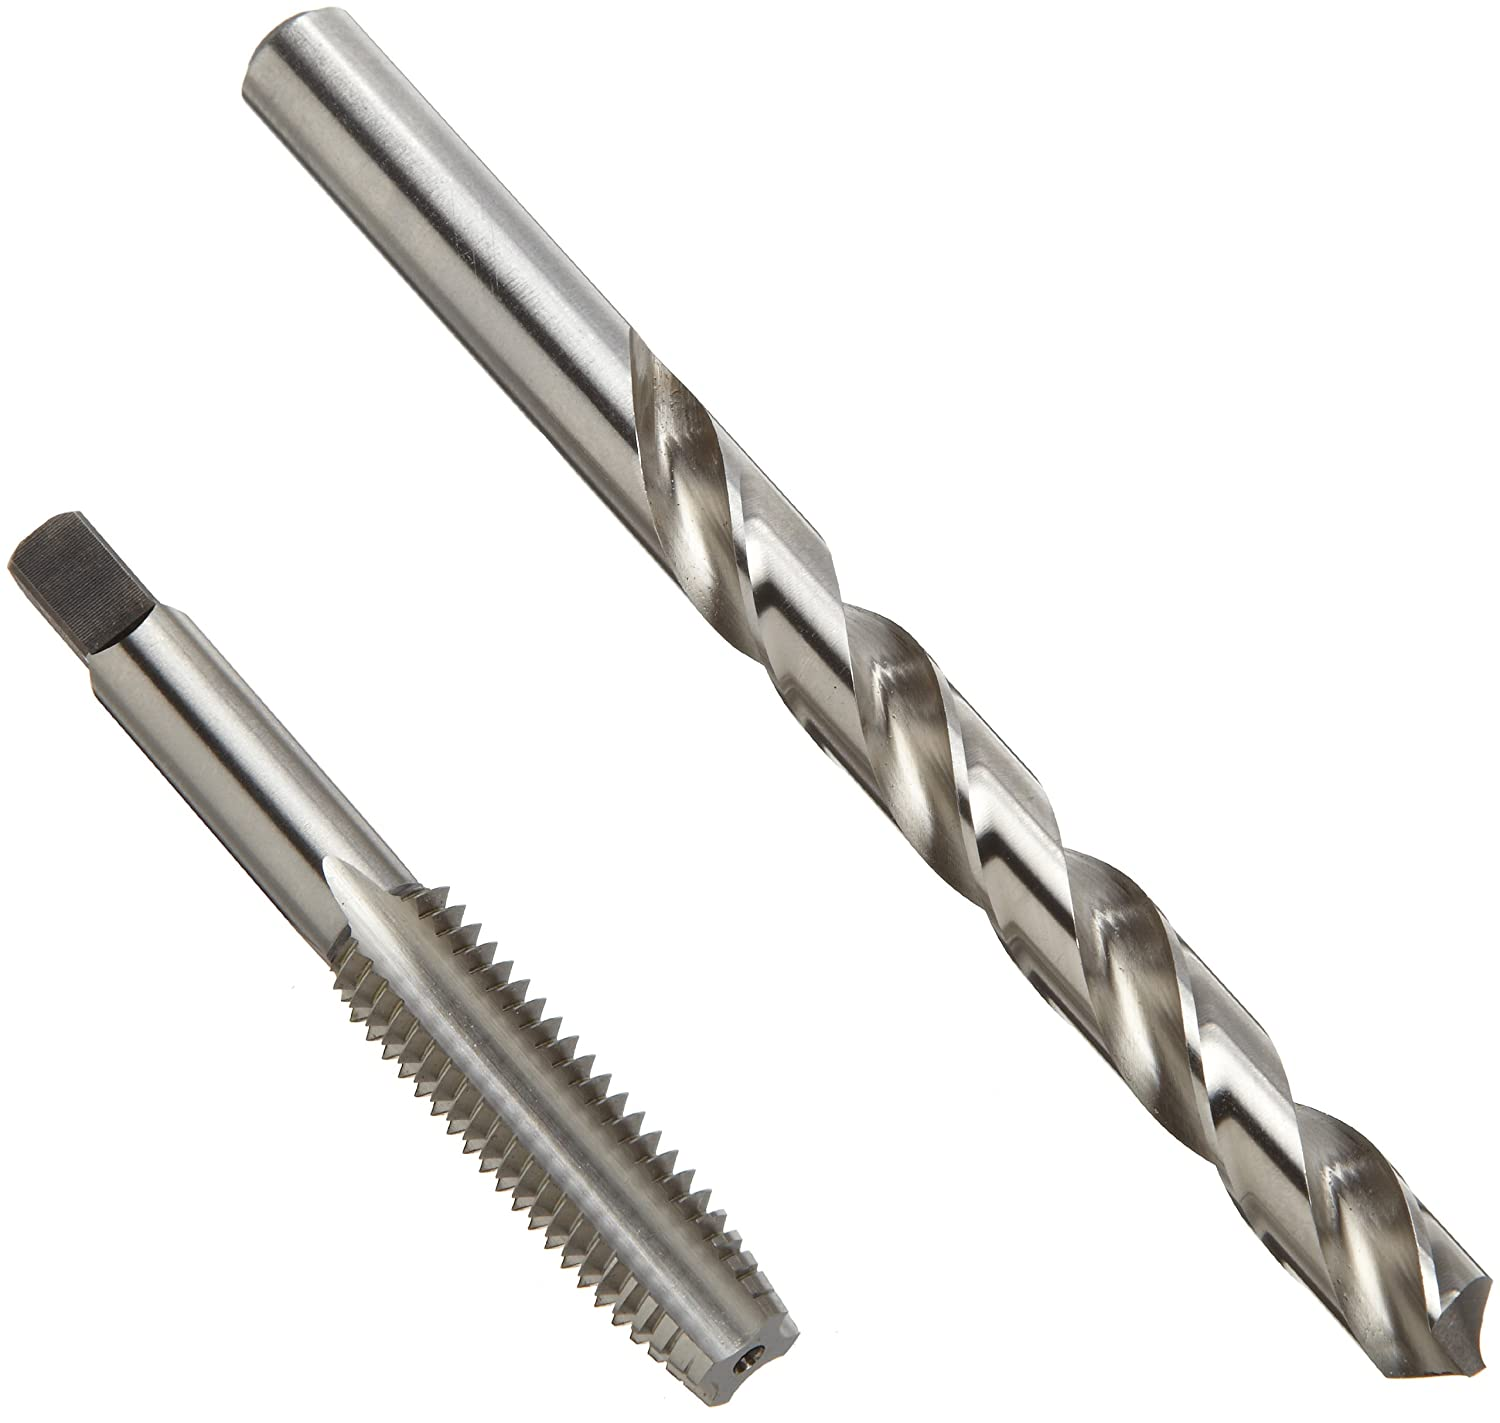 36-piece #6-32 to 1//2-20 Tap Sizes Letter Inch Wire Size Bright UNC//UNF Uncoated Chicago Latrobe HT36 High-Speed Steel Jobber Length Drill Bit and Hand Tap Set with Metal Case Finish